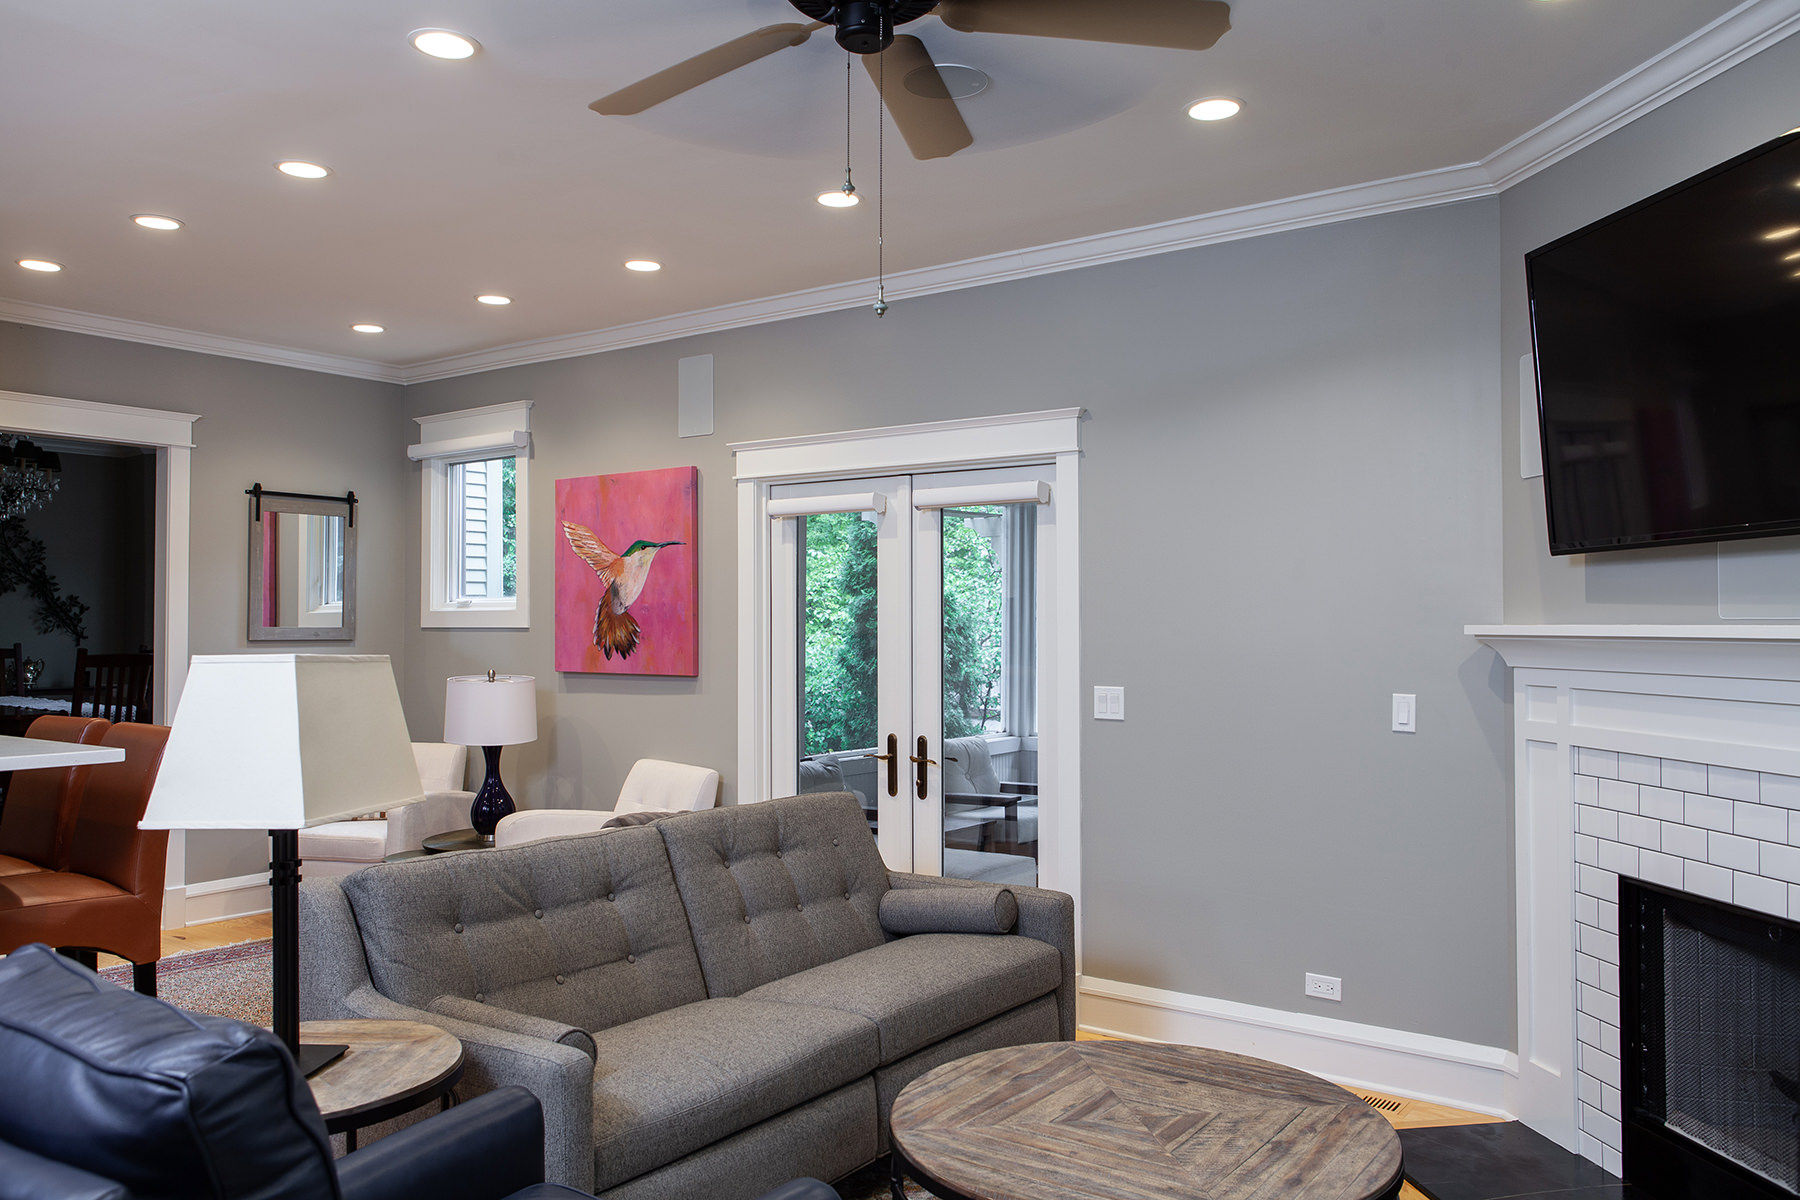 Medium gray walls and light wood flooring make for a classic, yet, modern look in this Libertyville home remodel.